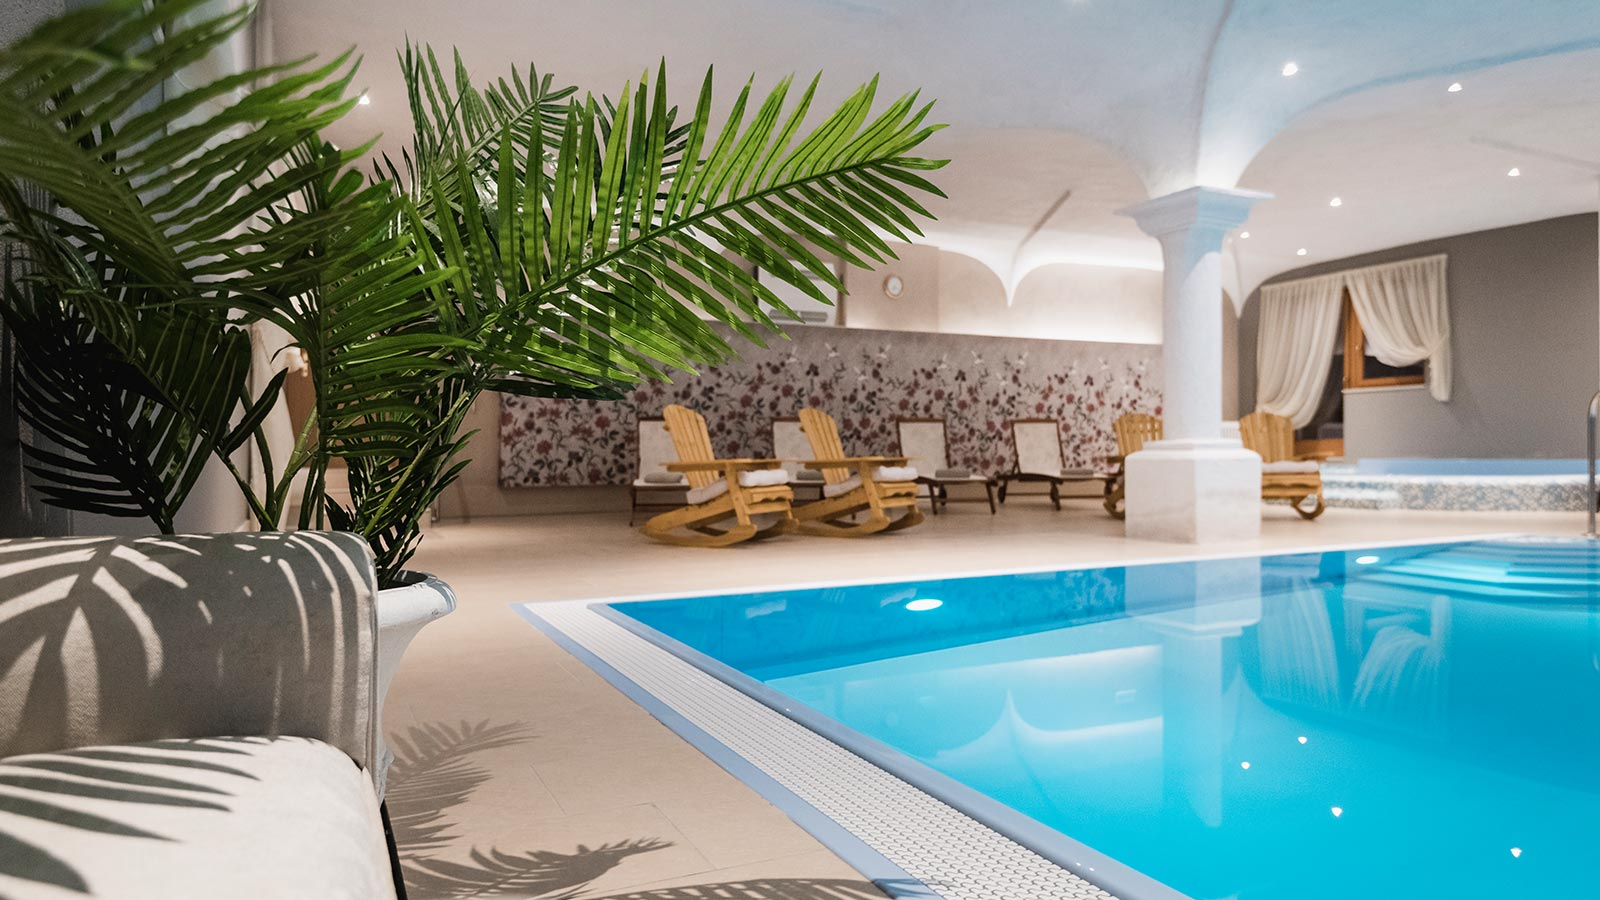 The indoor swimming pool with a palm tree and some deckchairs